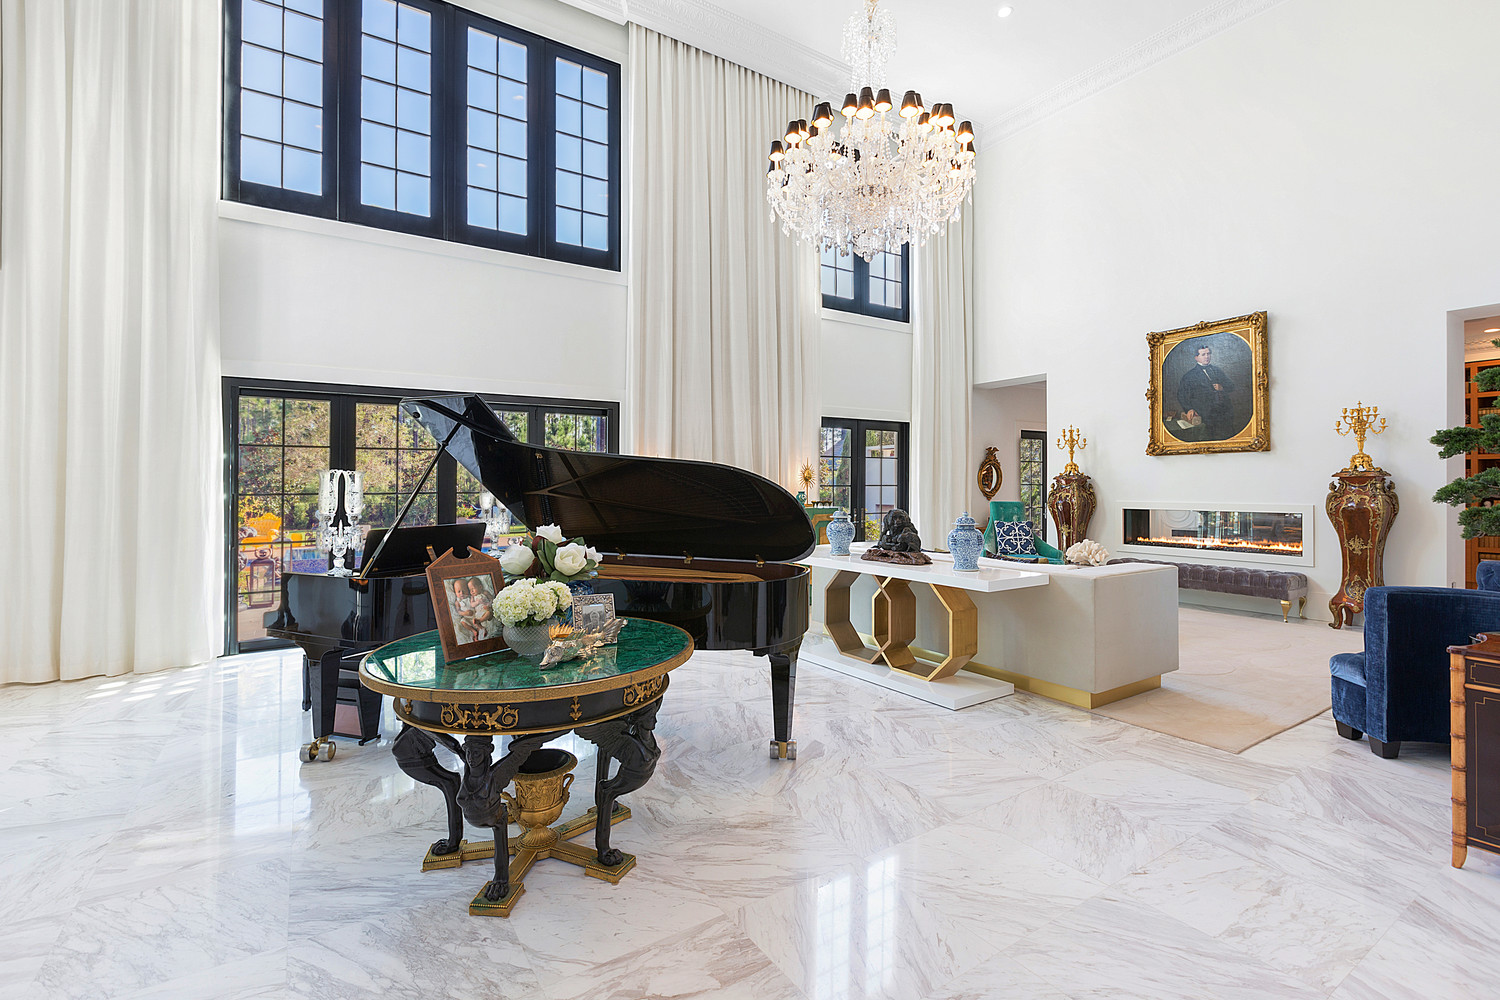 This room features a grand piano that was built for Julie Andrews and a Russian Empire malachite table with a dore and ebonized bronze base, among several other attractions.